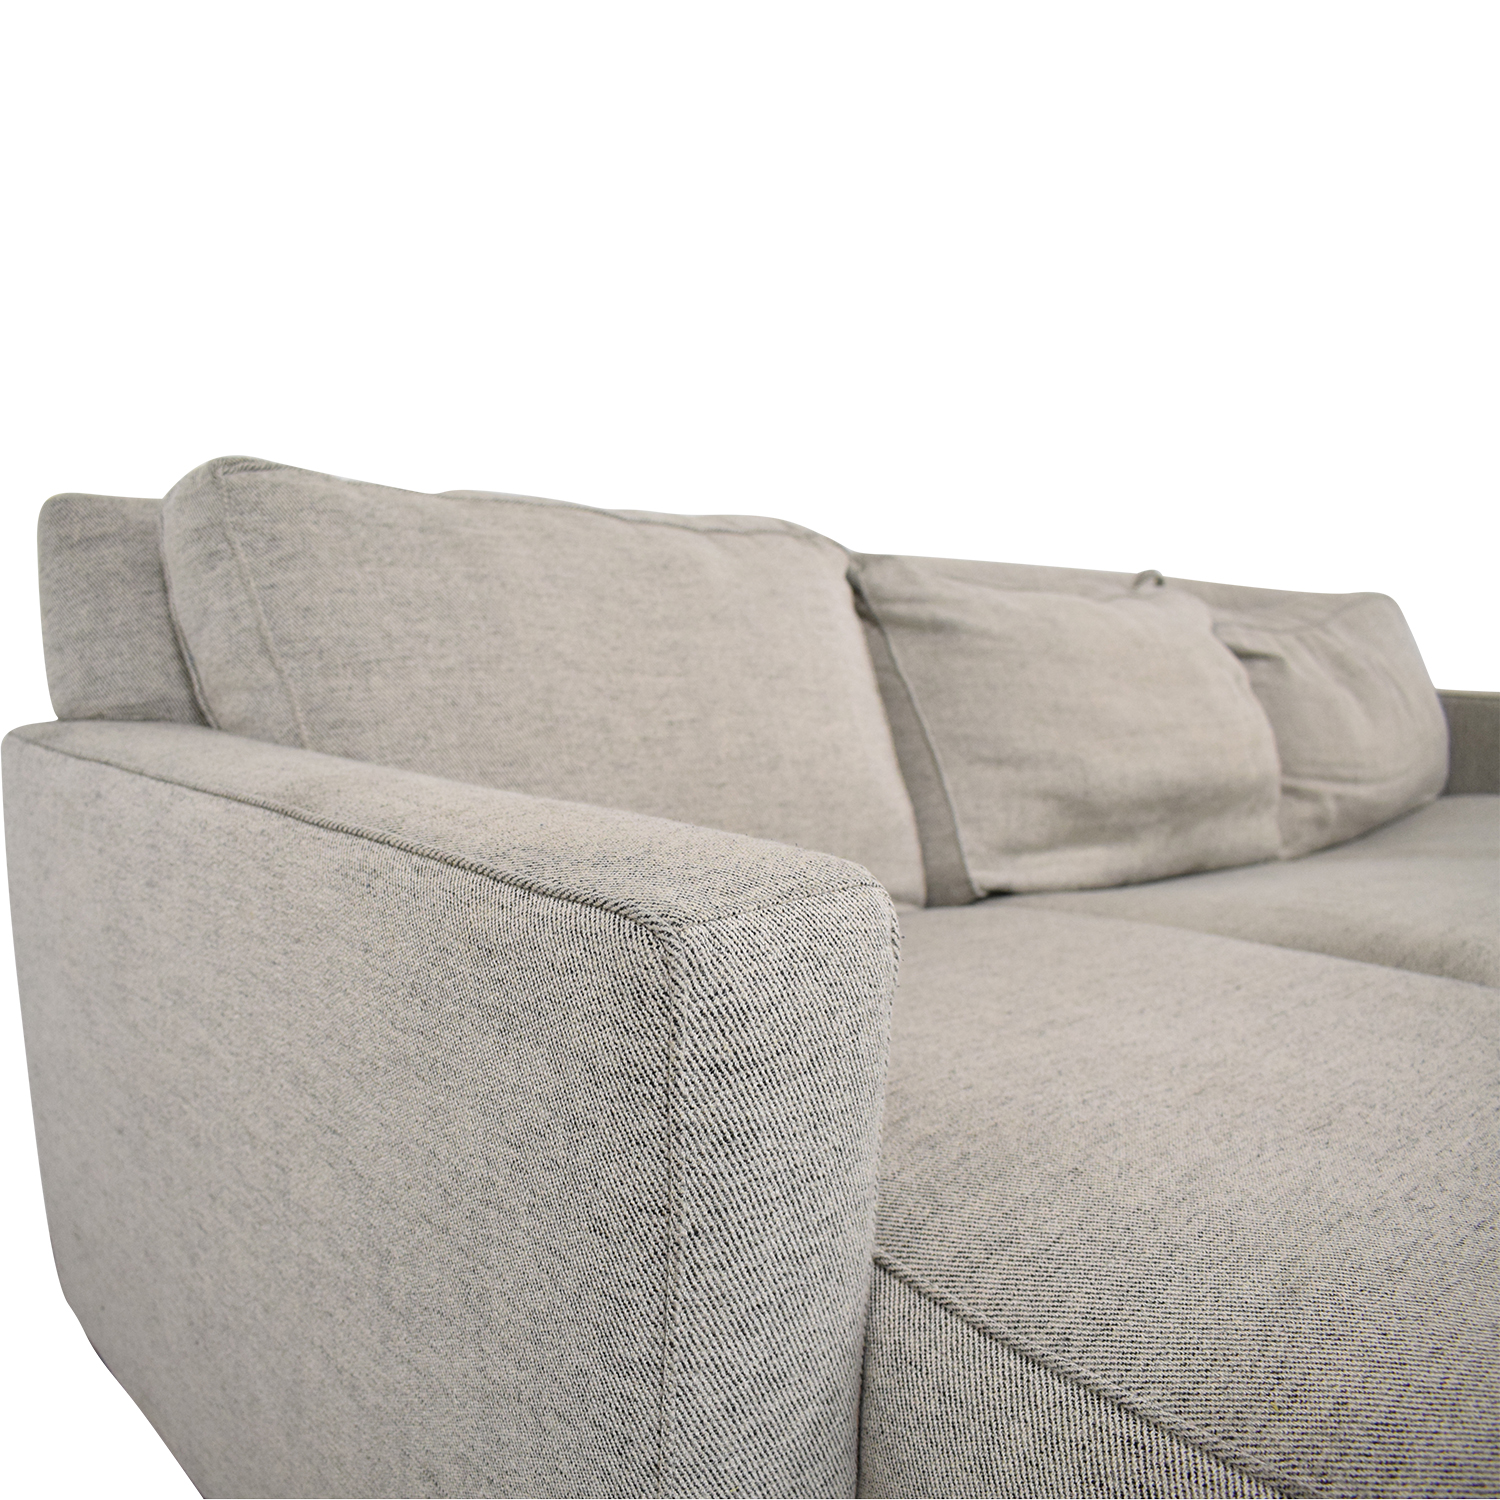 West Elm Henry 2-Piece Full Sleeper Sectional with Storage West Elm